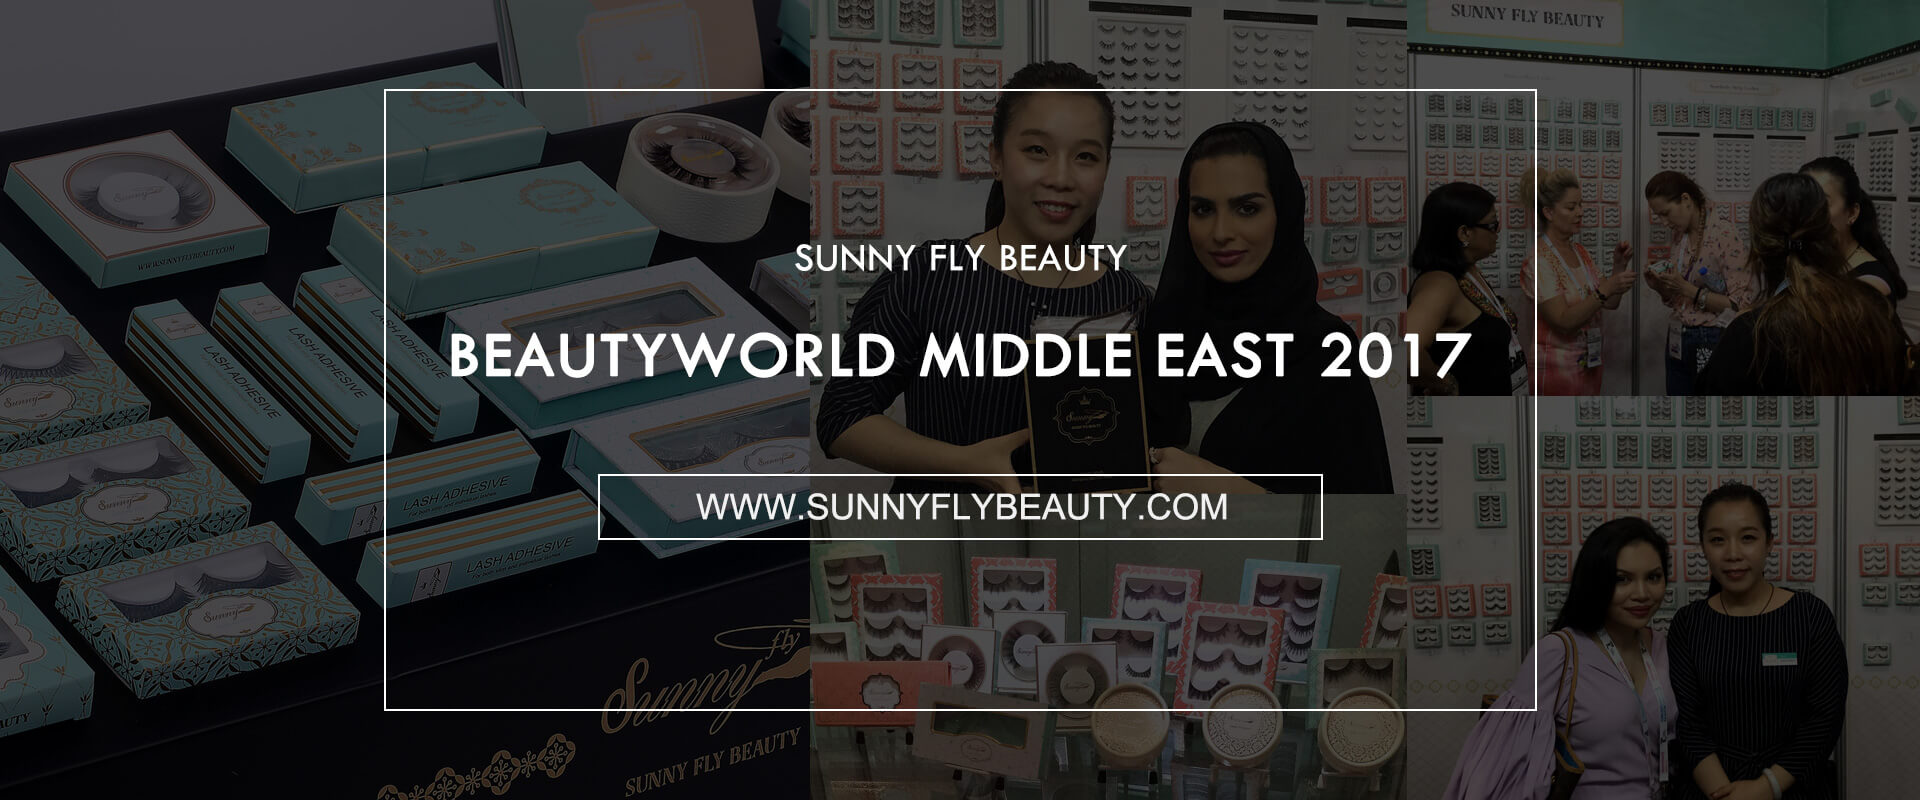 beautyworld middle east 2017